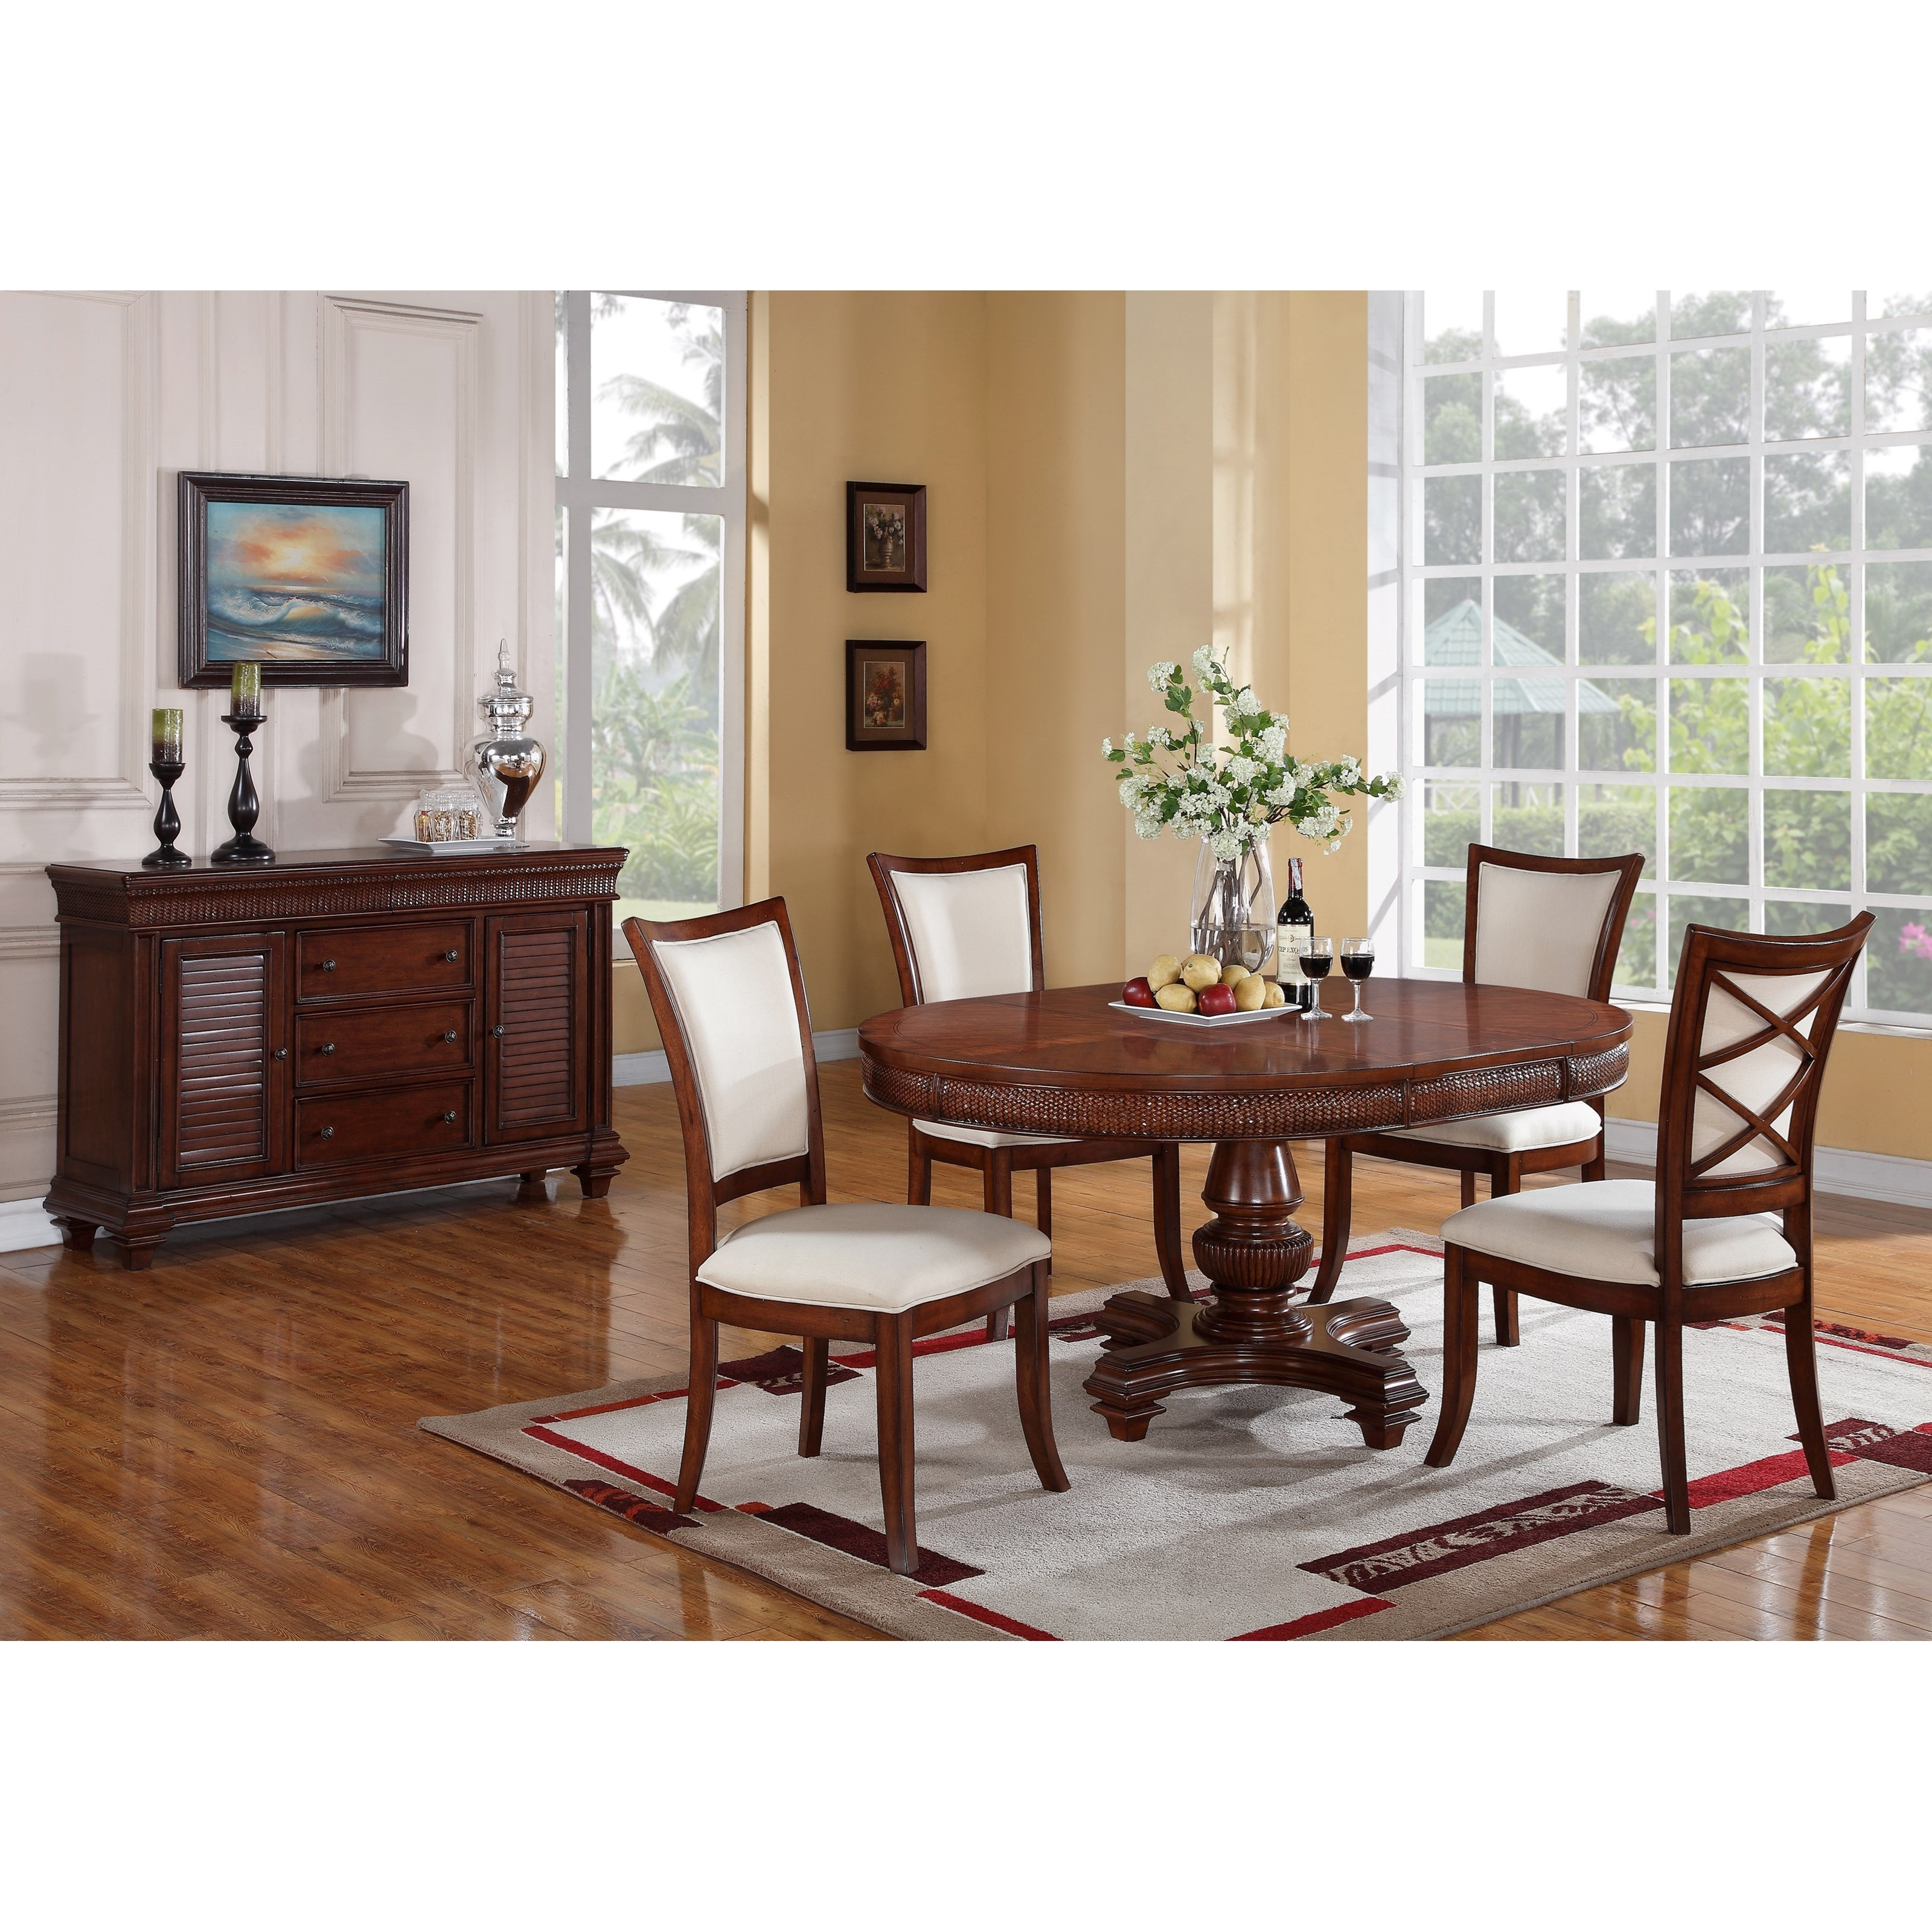 Riverside furniture windward bay casual dining room group for Casual dining room furniture